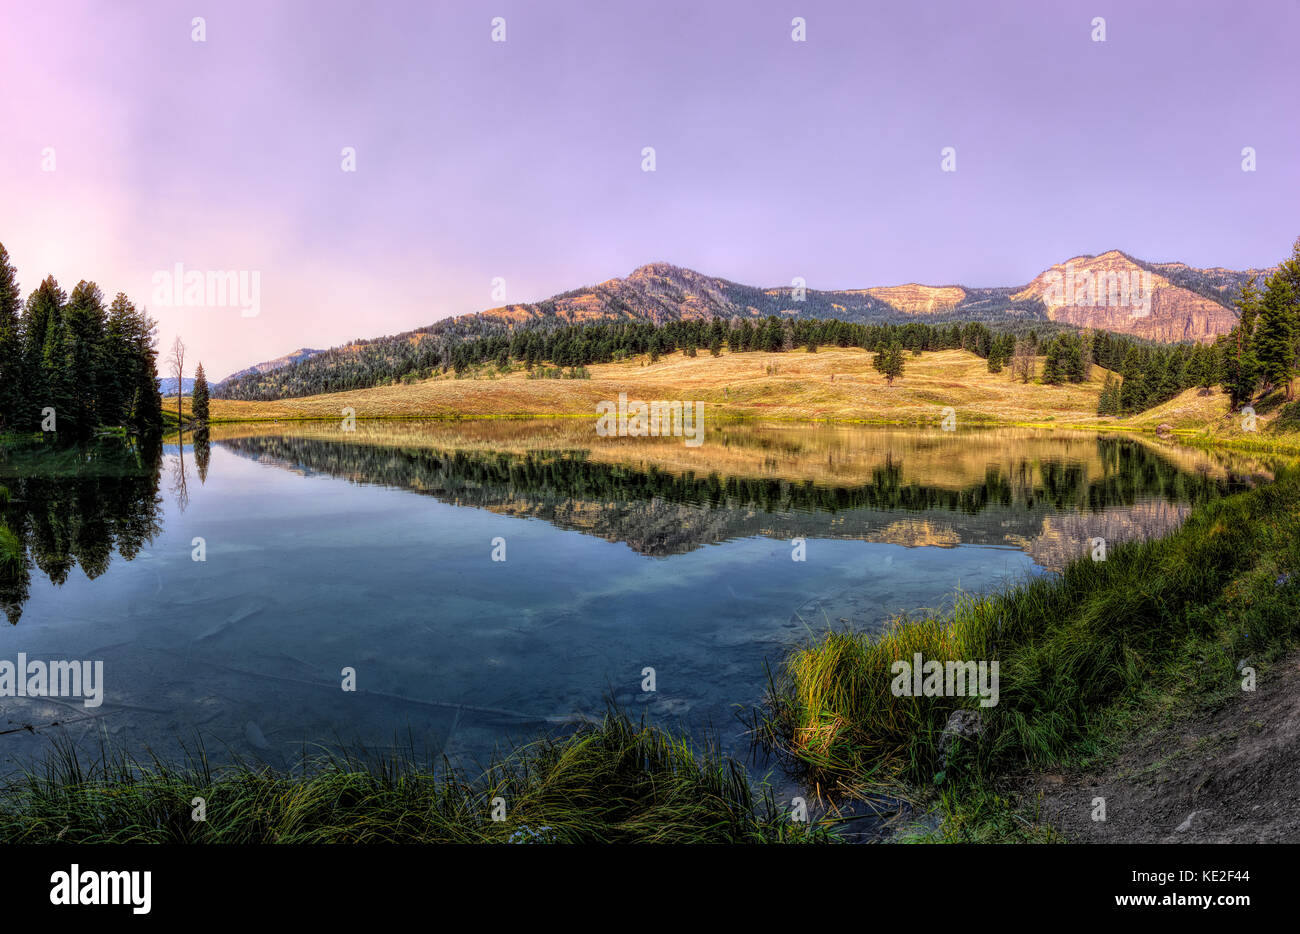 August 22, 2017 - Trout Lake located in Yellowstone National Park - Stock Image